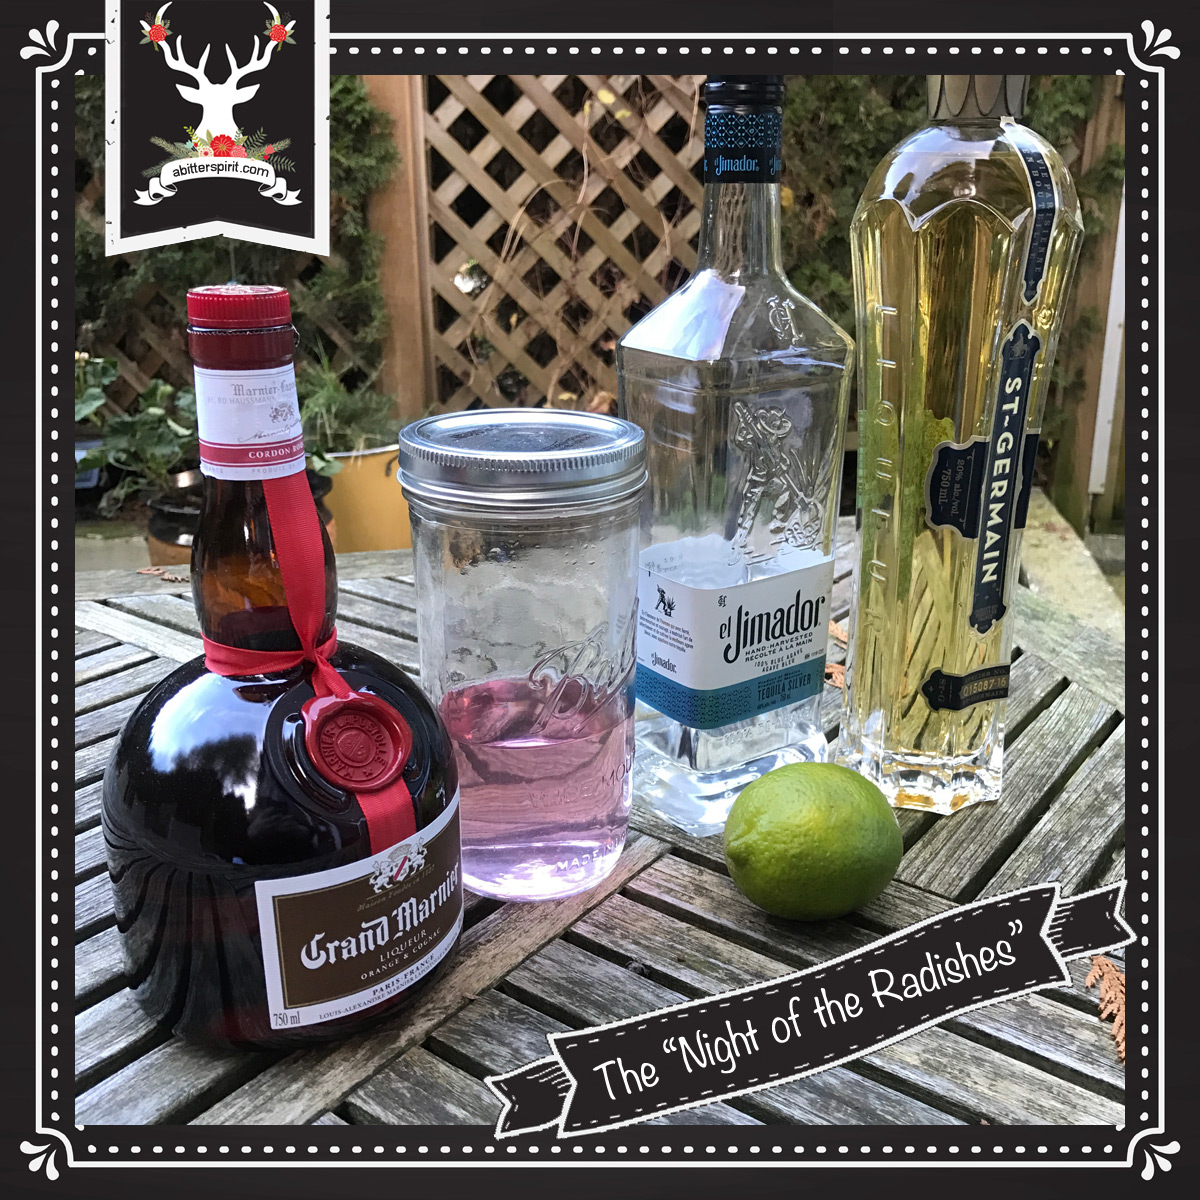 The 'Night of the Radishes' Cocktail Ingredients - ABitterSpirit.com